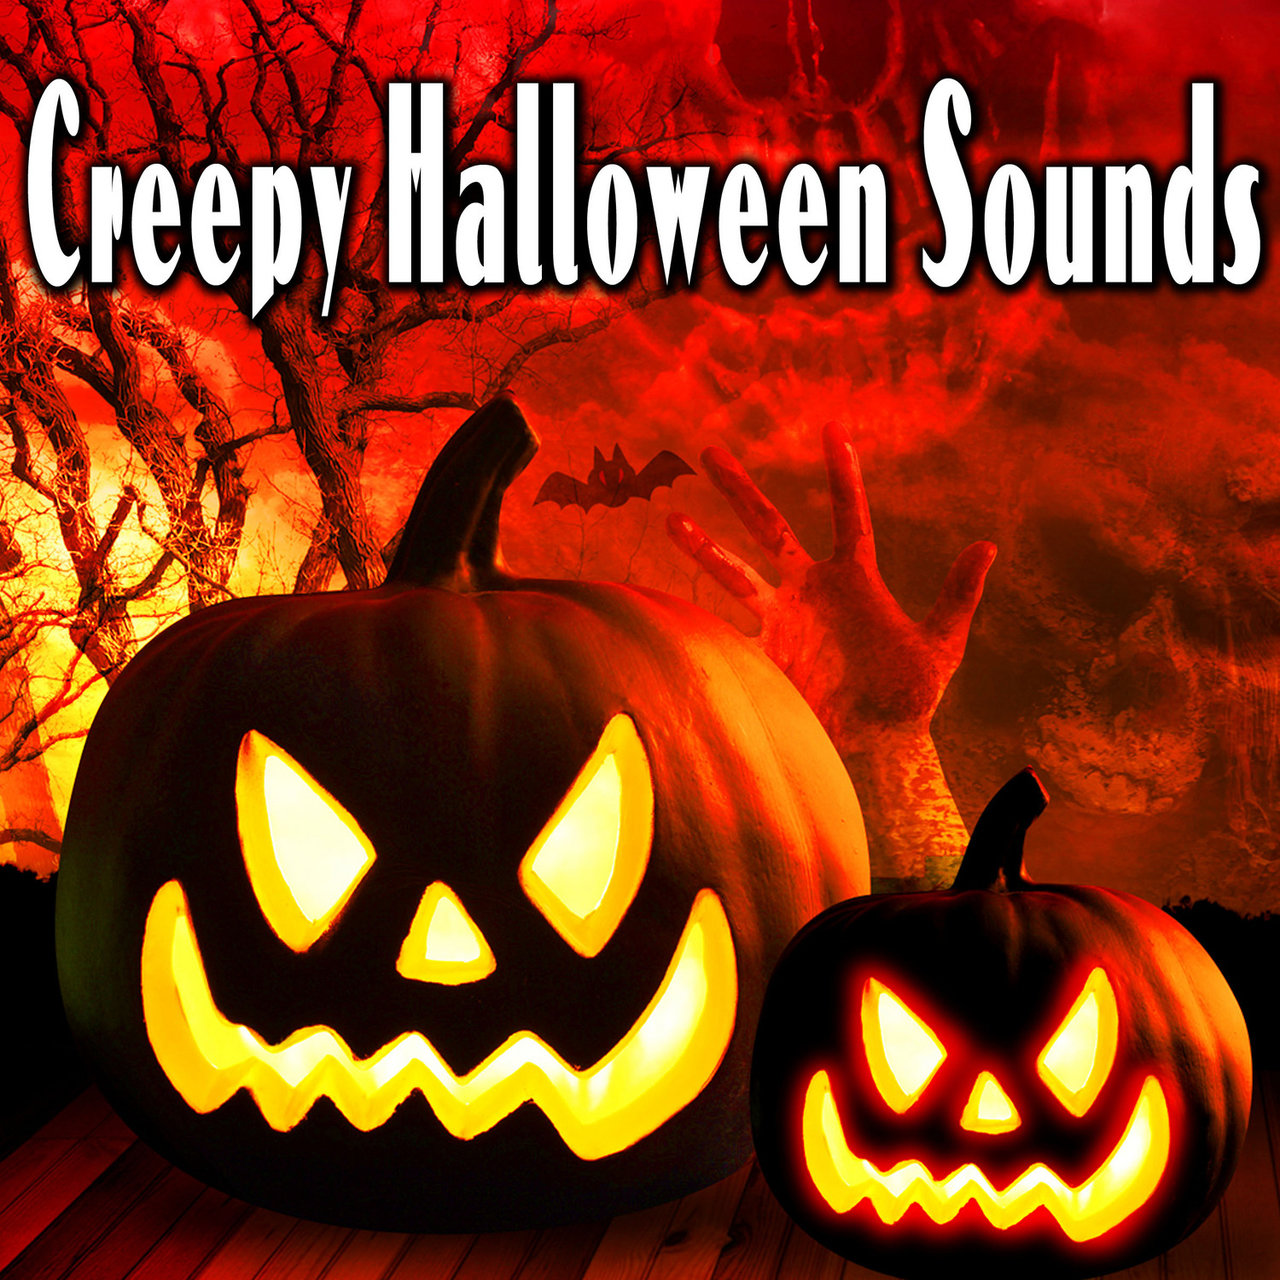 TIDAL: Listen to Halloween Sound Effects on TIDAL